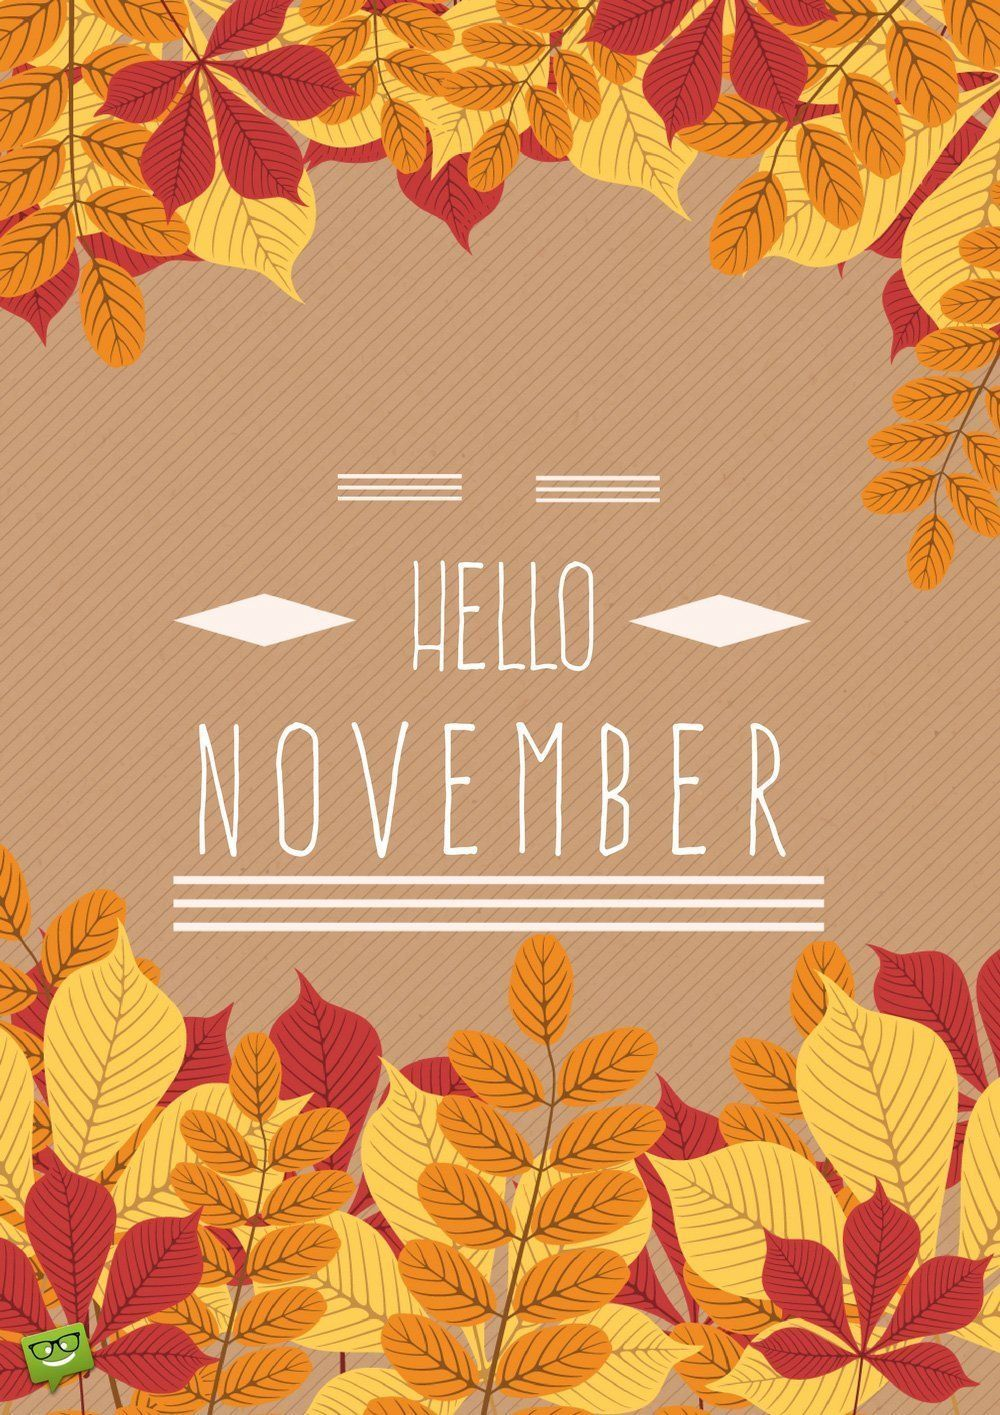 Hello November Wallpaper Mobile. #hellonovemberwallpaper Hello November Wallpaper Mobile. #hellonovember Hello November Wallpaper Mobile. #hellonovemberwallpaper Hello November Wallpaper Mobile. #hellonovembermonth